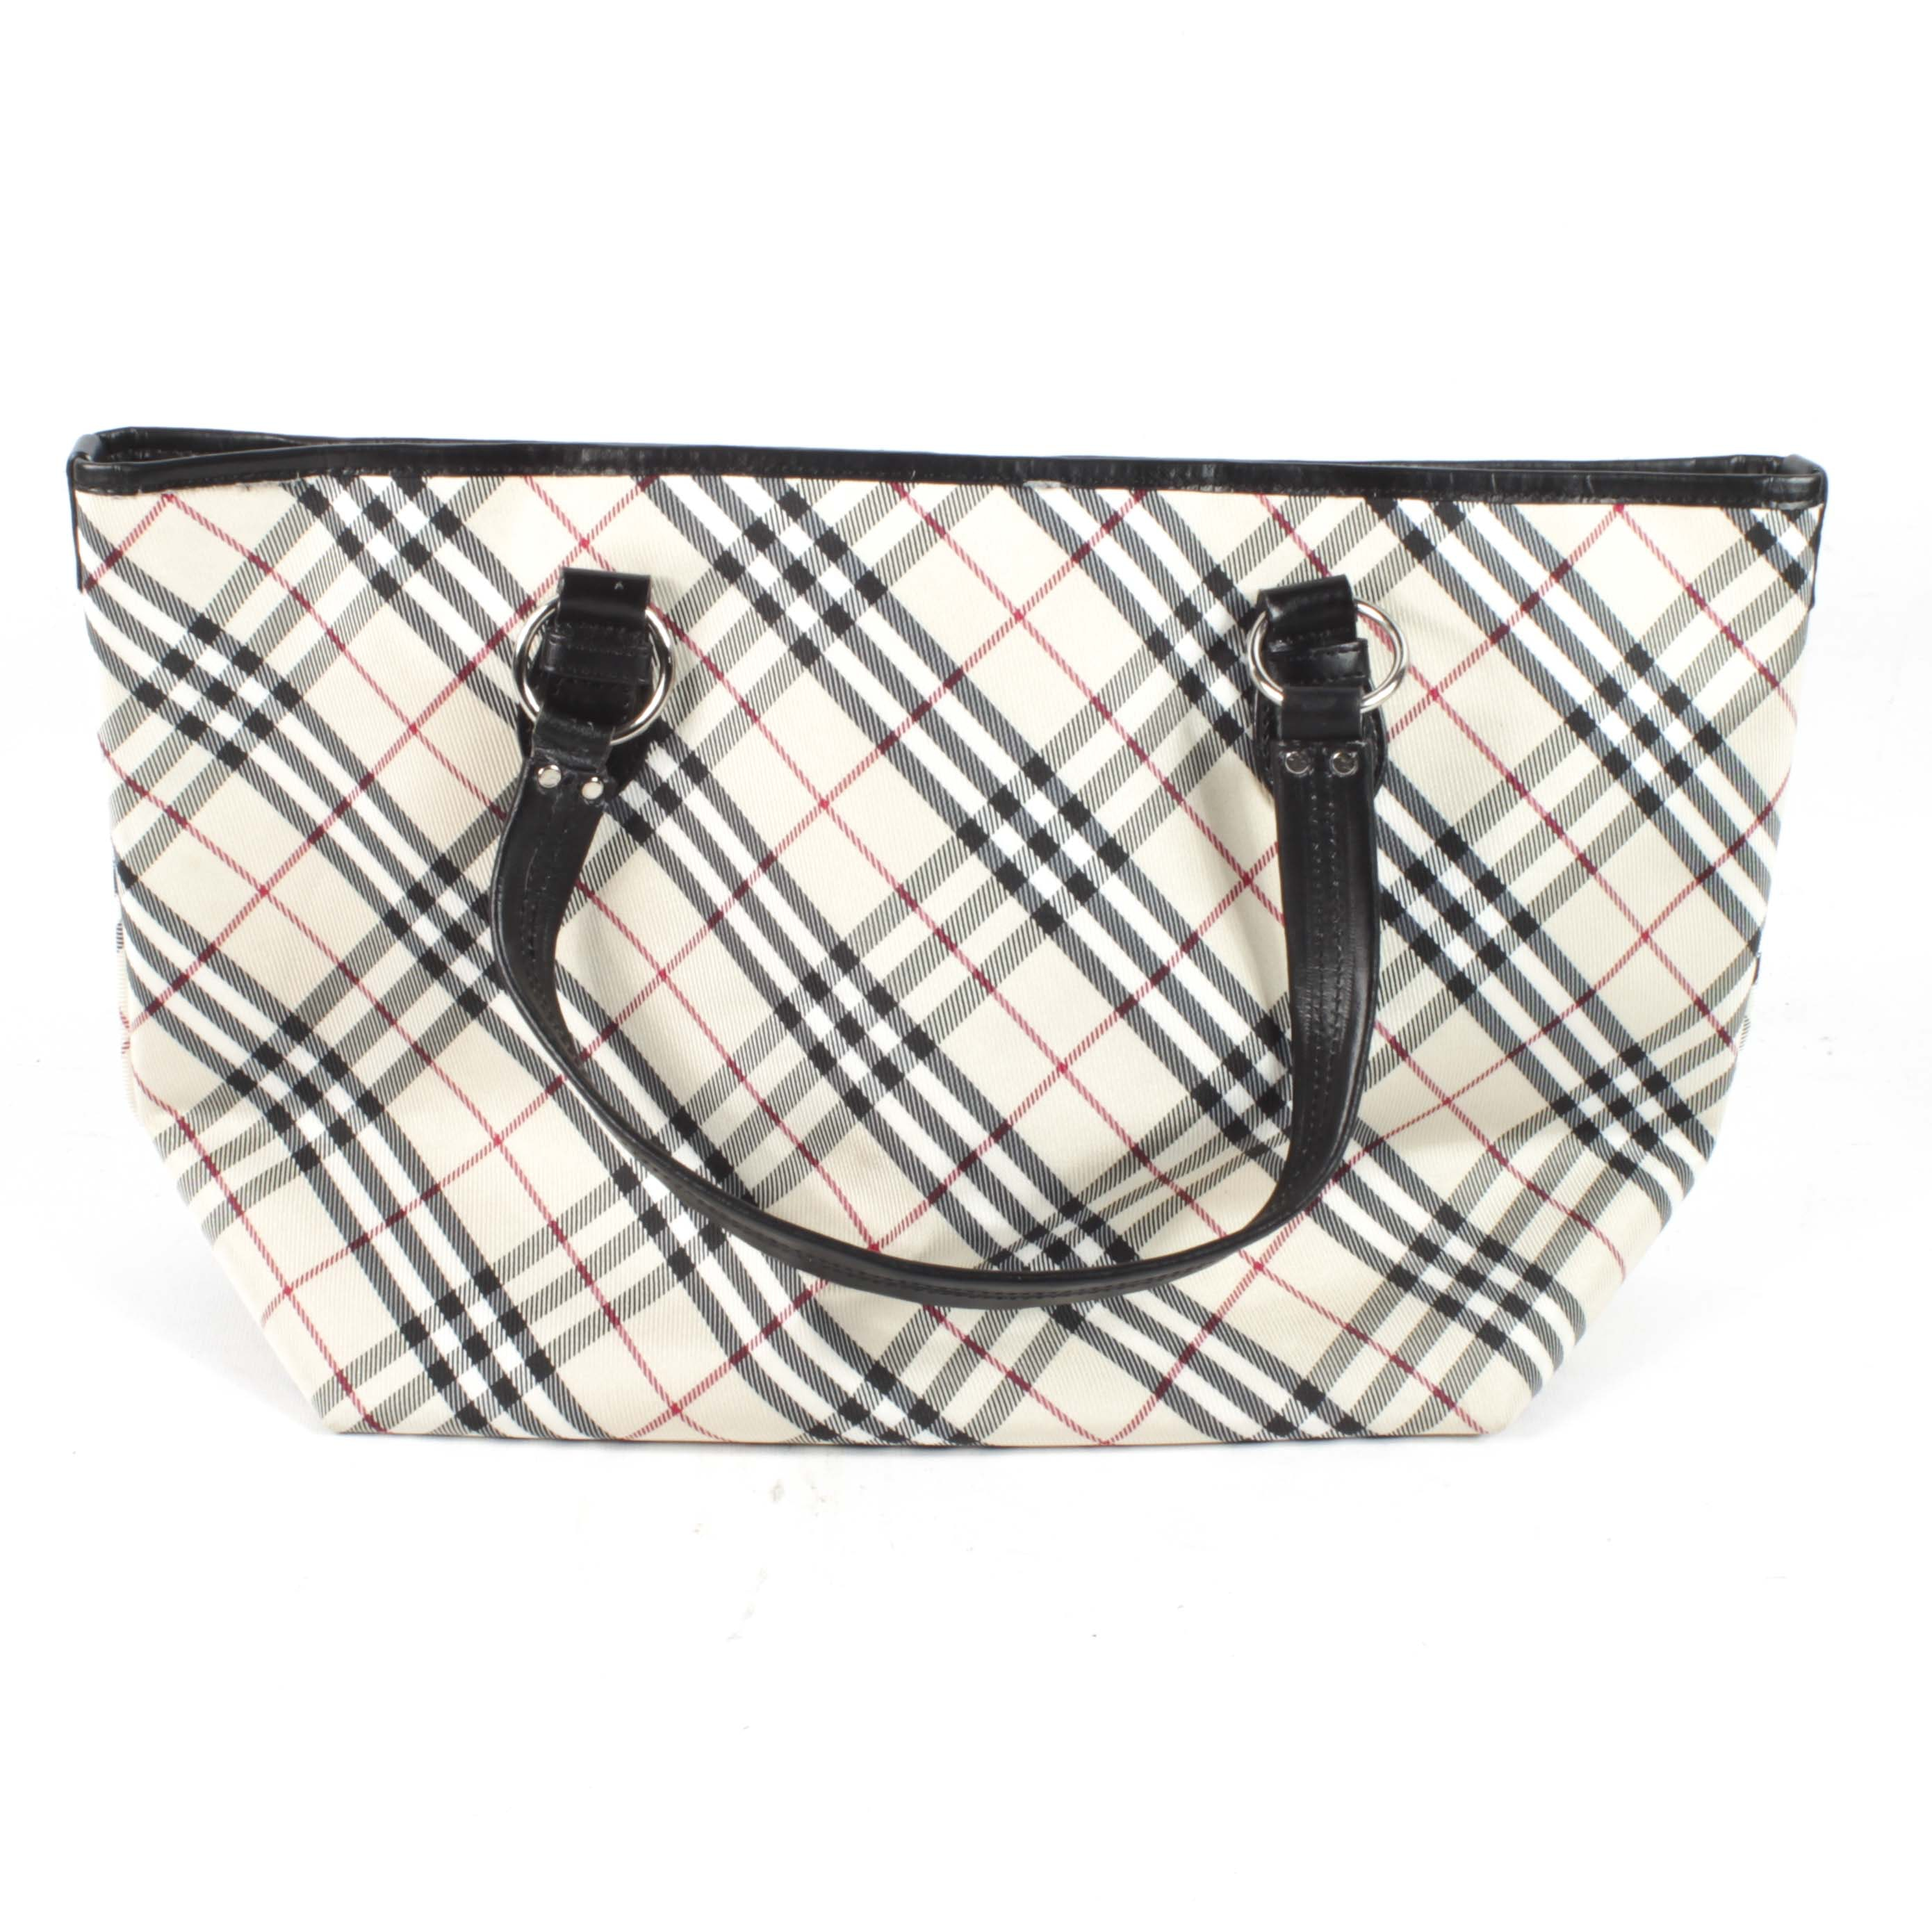 "Burberry Blue Label ""Nova Check"" Canvas Handbag"